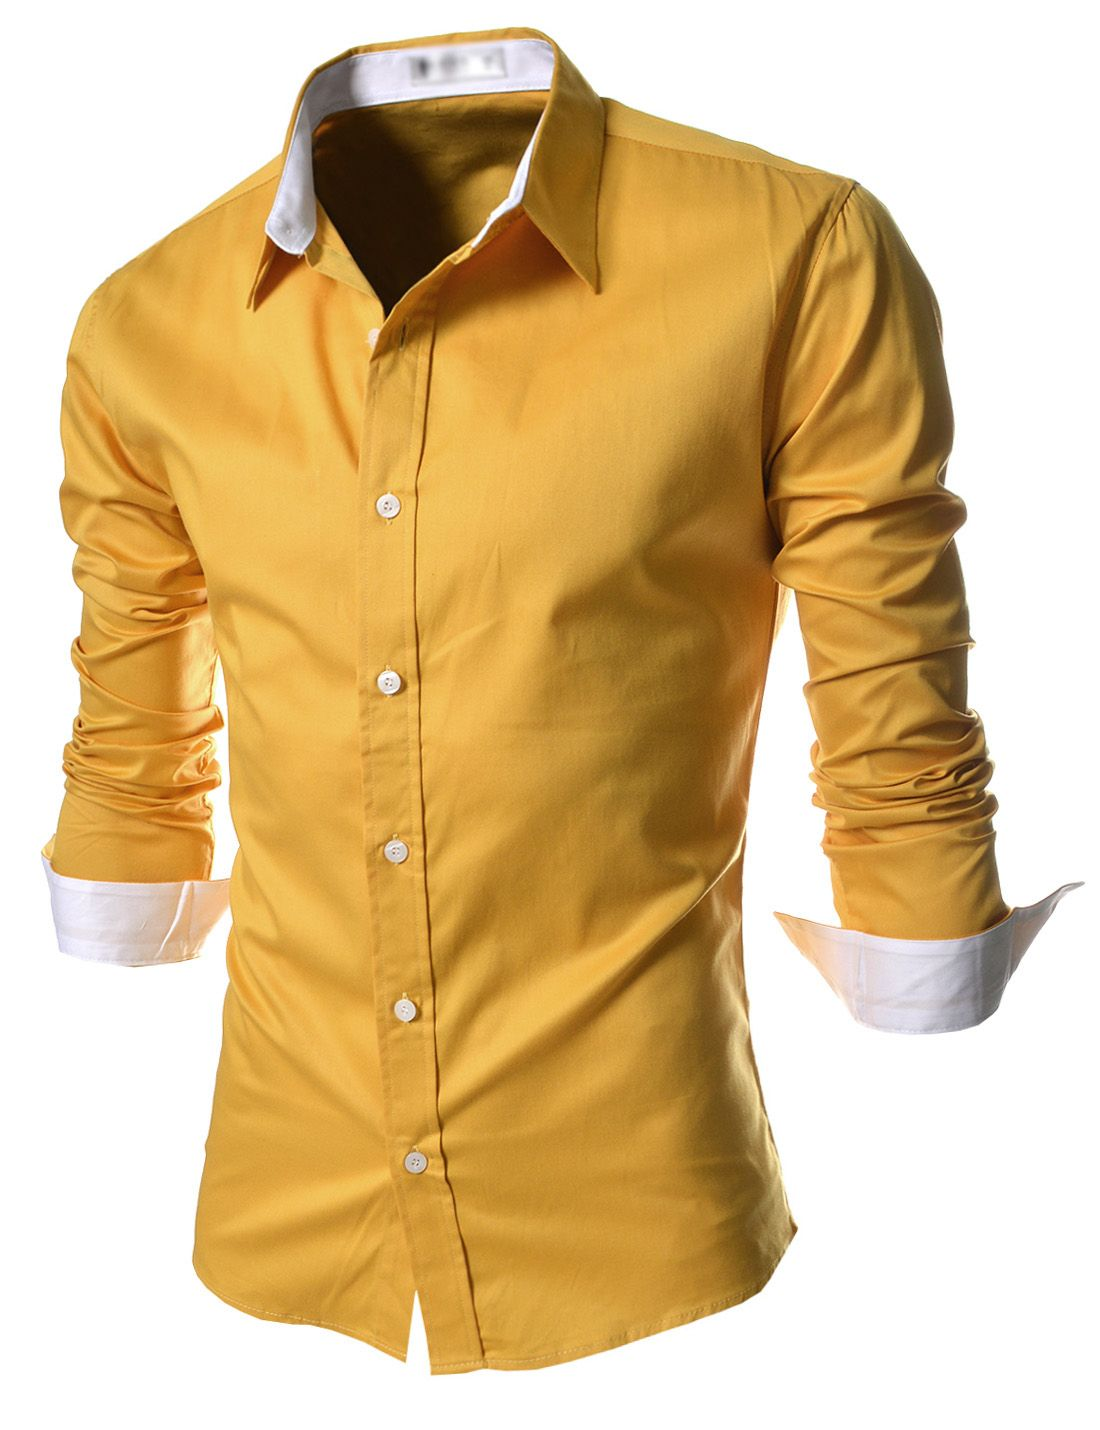 51a42d5d232 Yellow dress shirt. Slim fit.